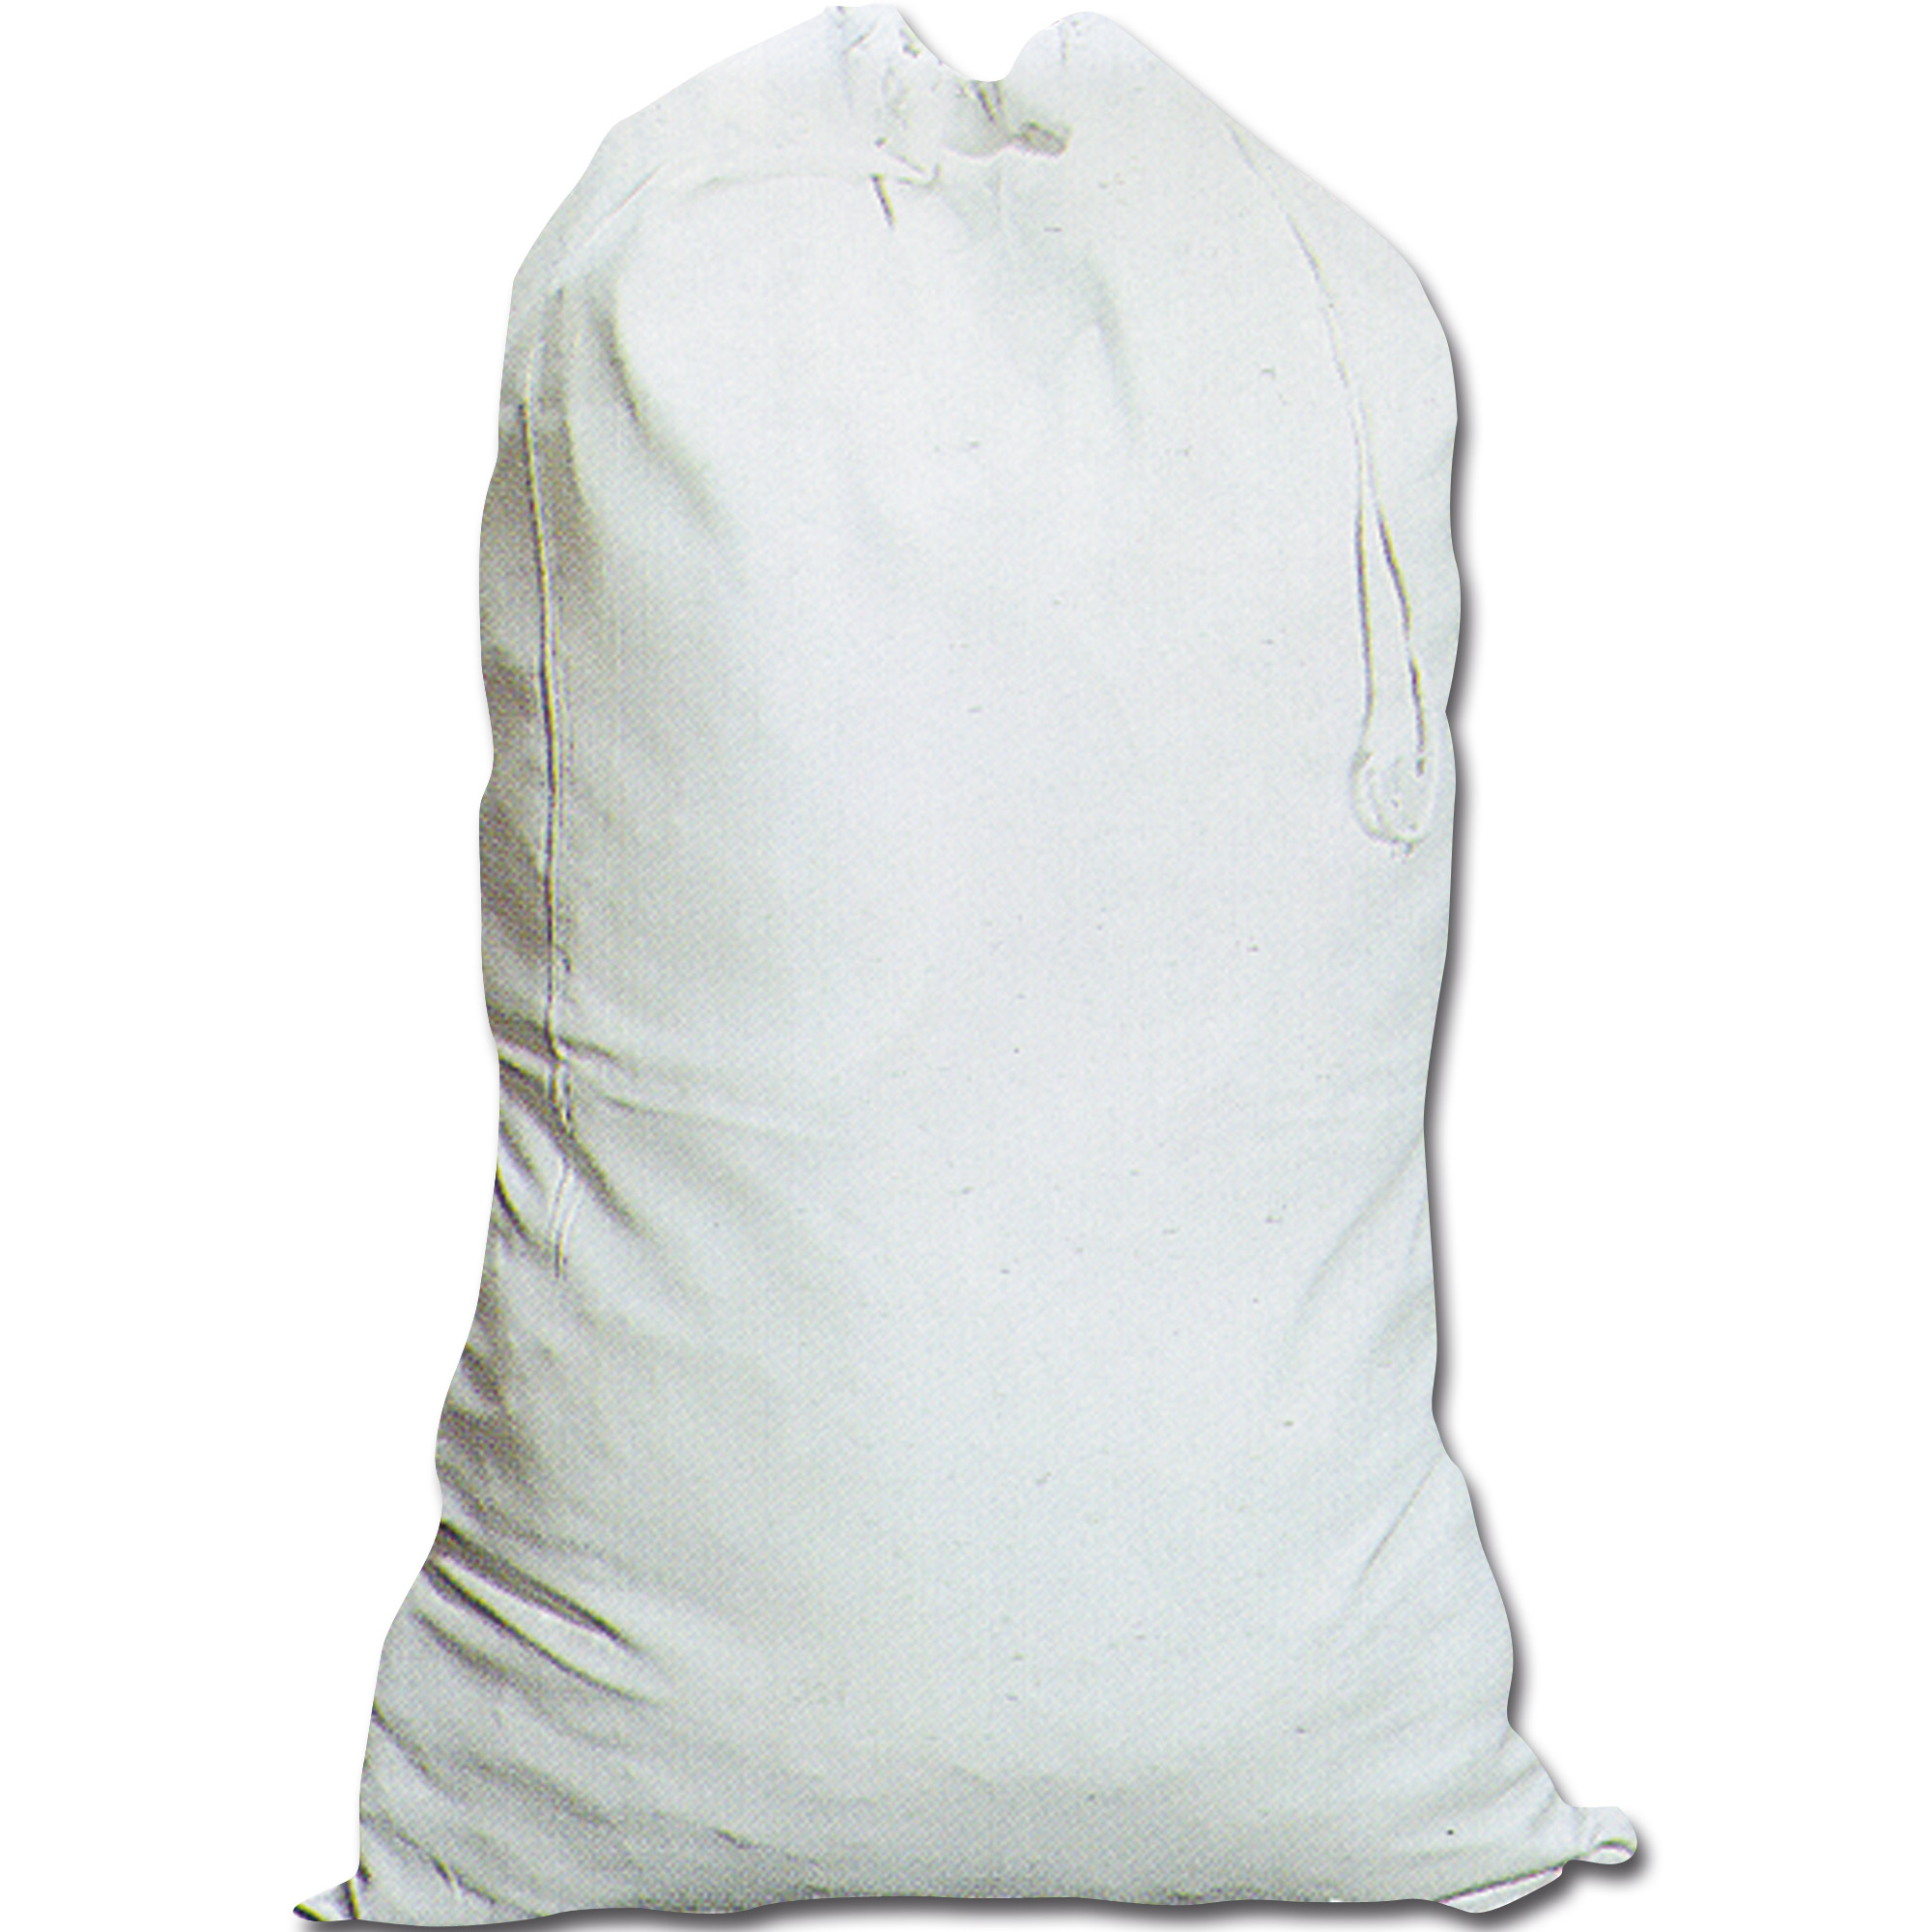 Army Laundry Bag Used white